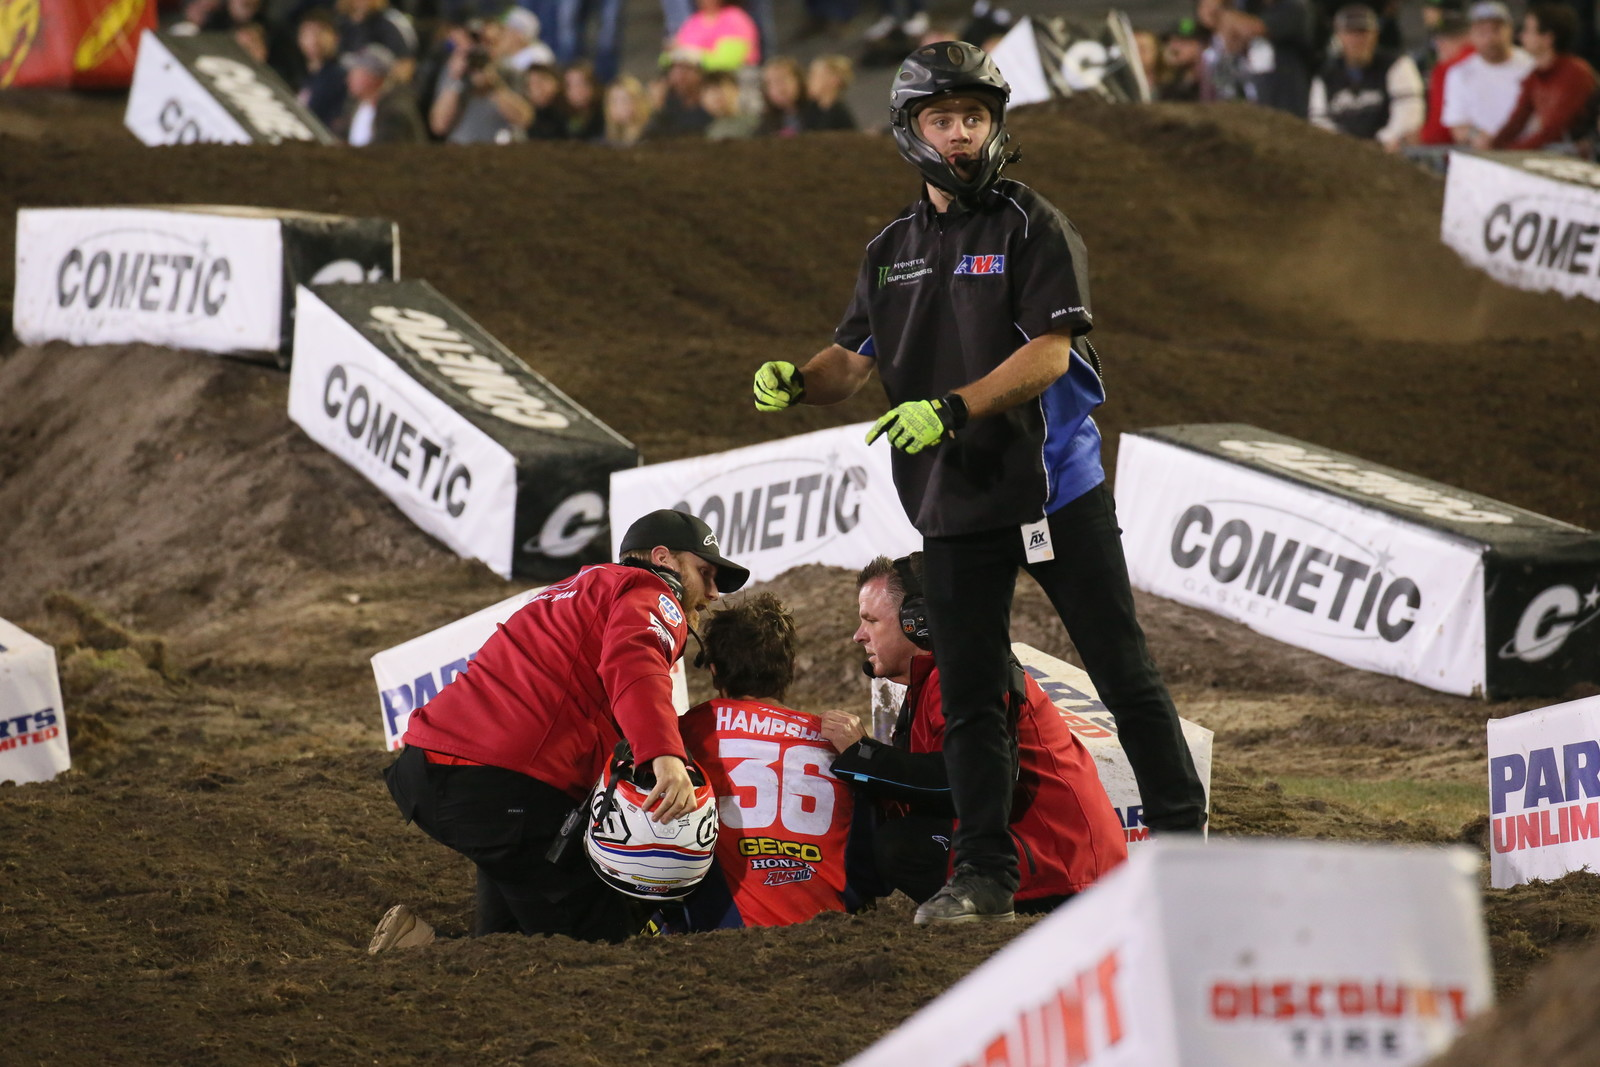 Injury Report: RJ Hampshire - Daytona Supercross